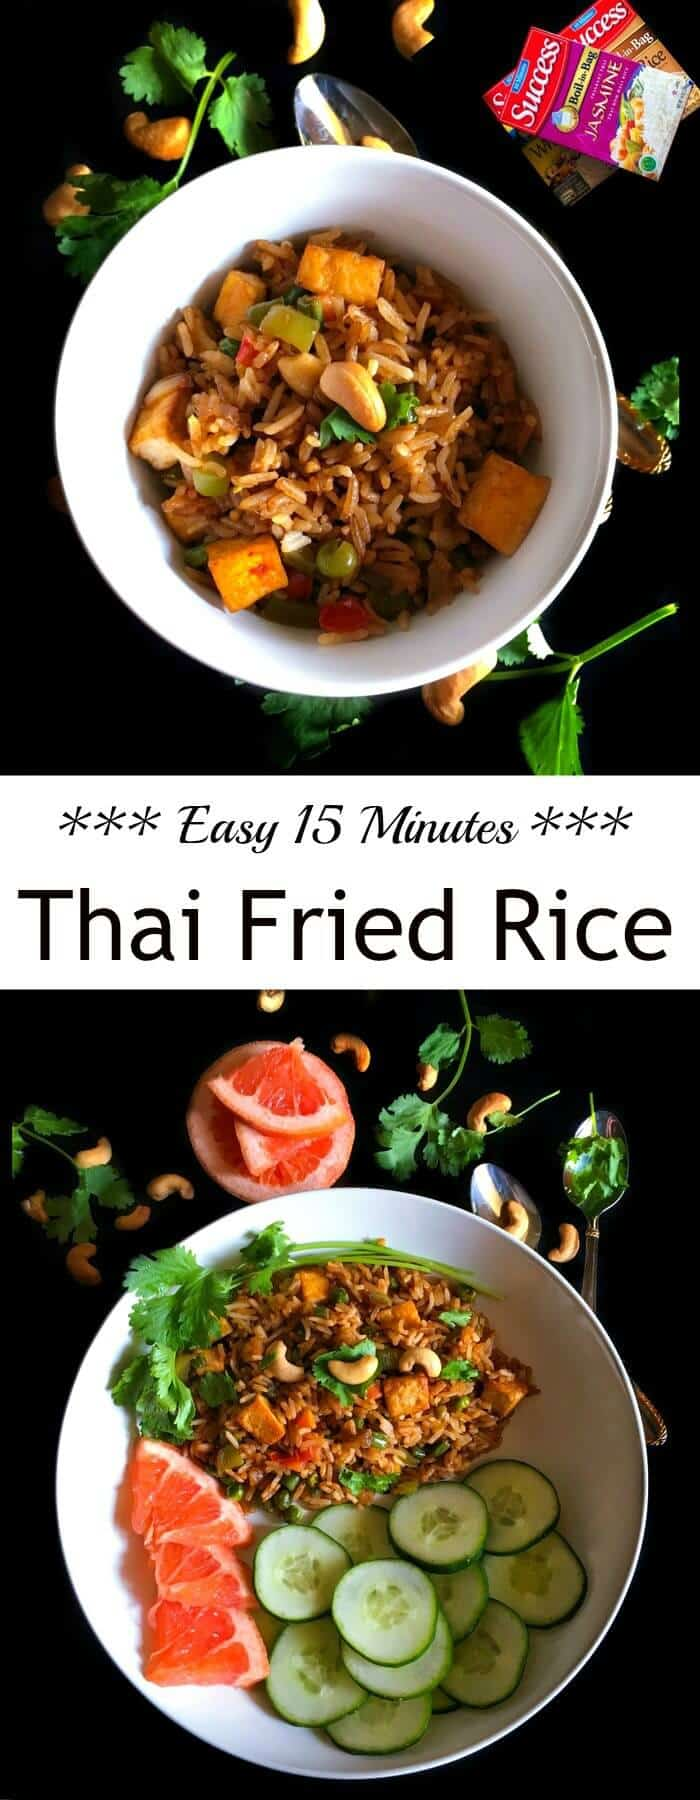 Easy-15-Minutes-Thai-Fried-Rice : #ad @successrice #Back2SchoolSuccess #thai #fried #rice